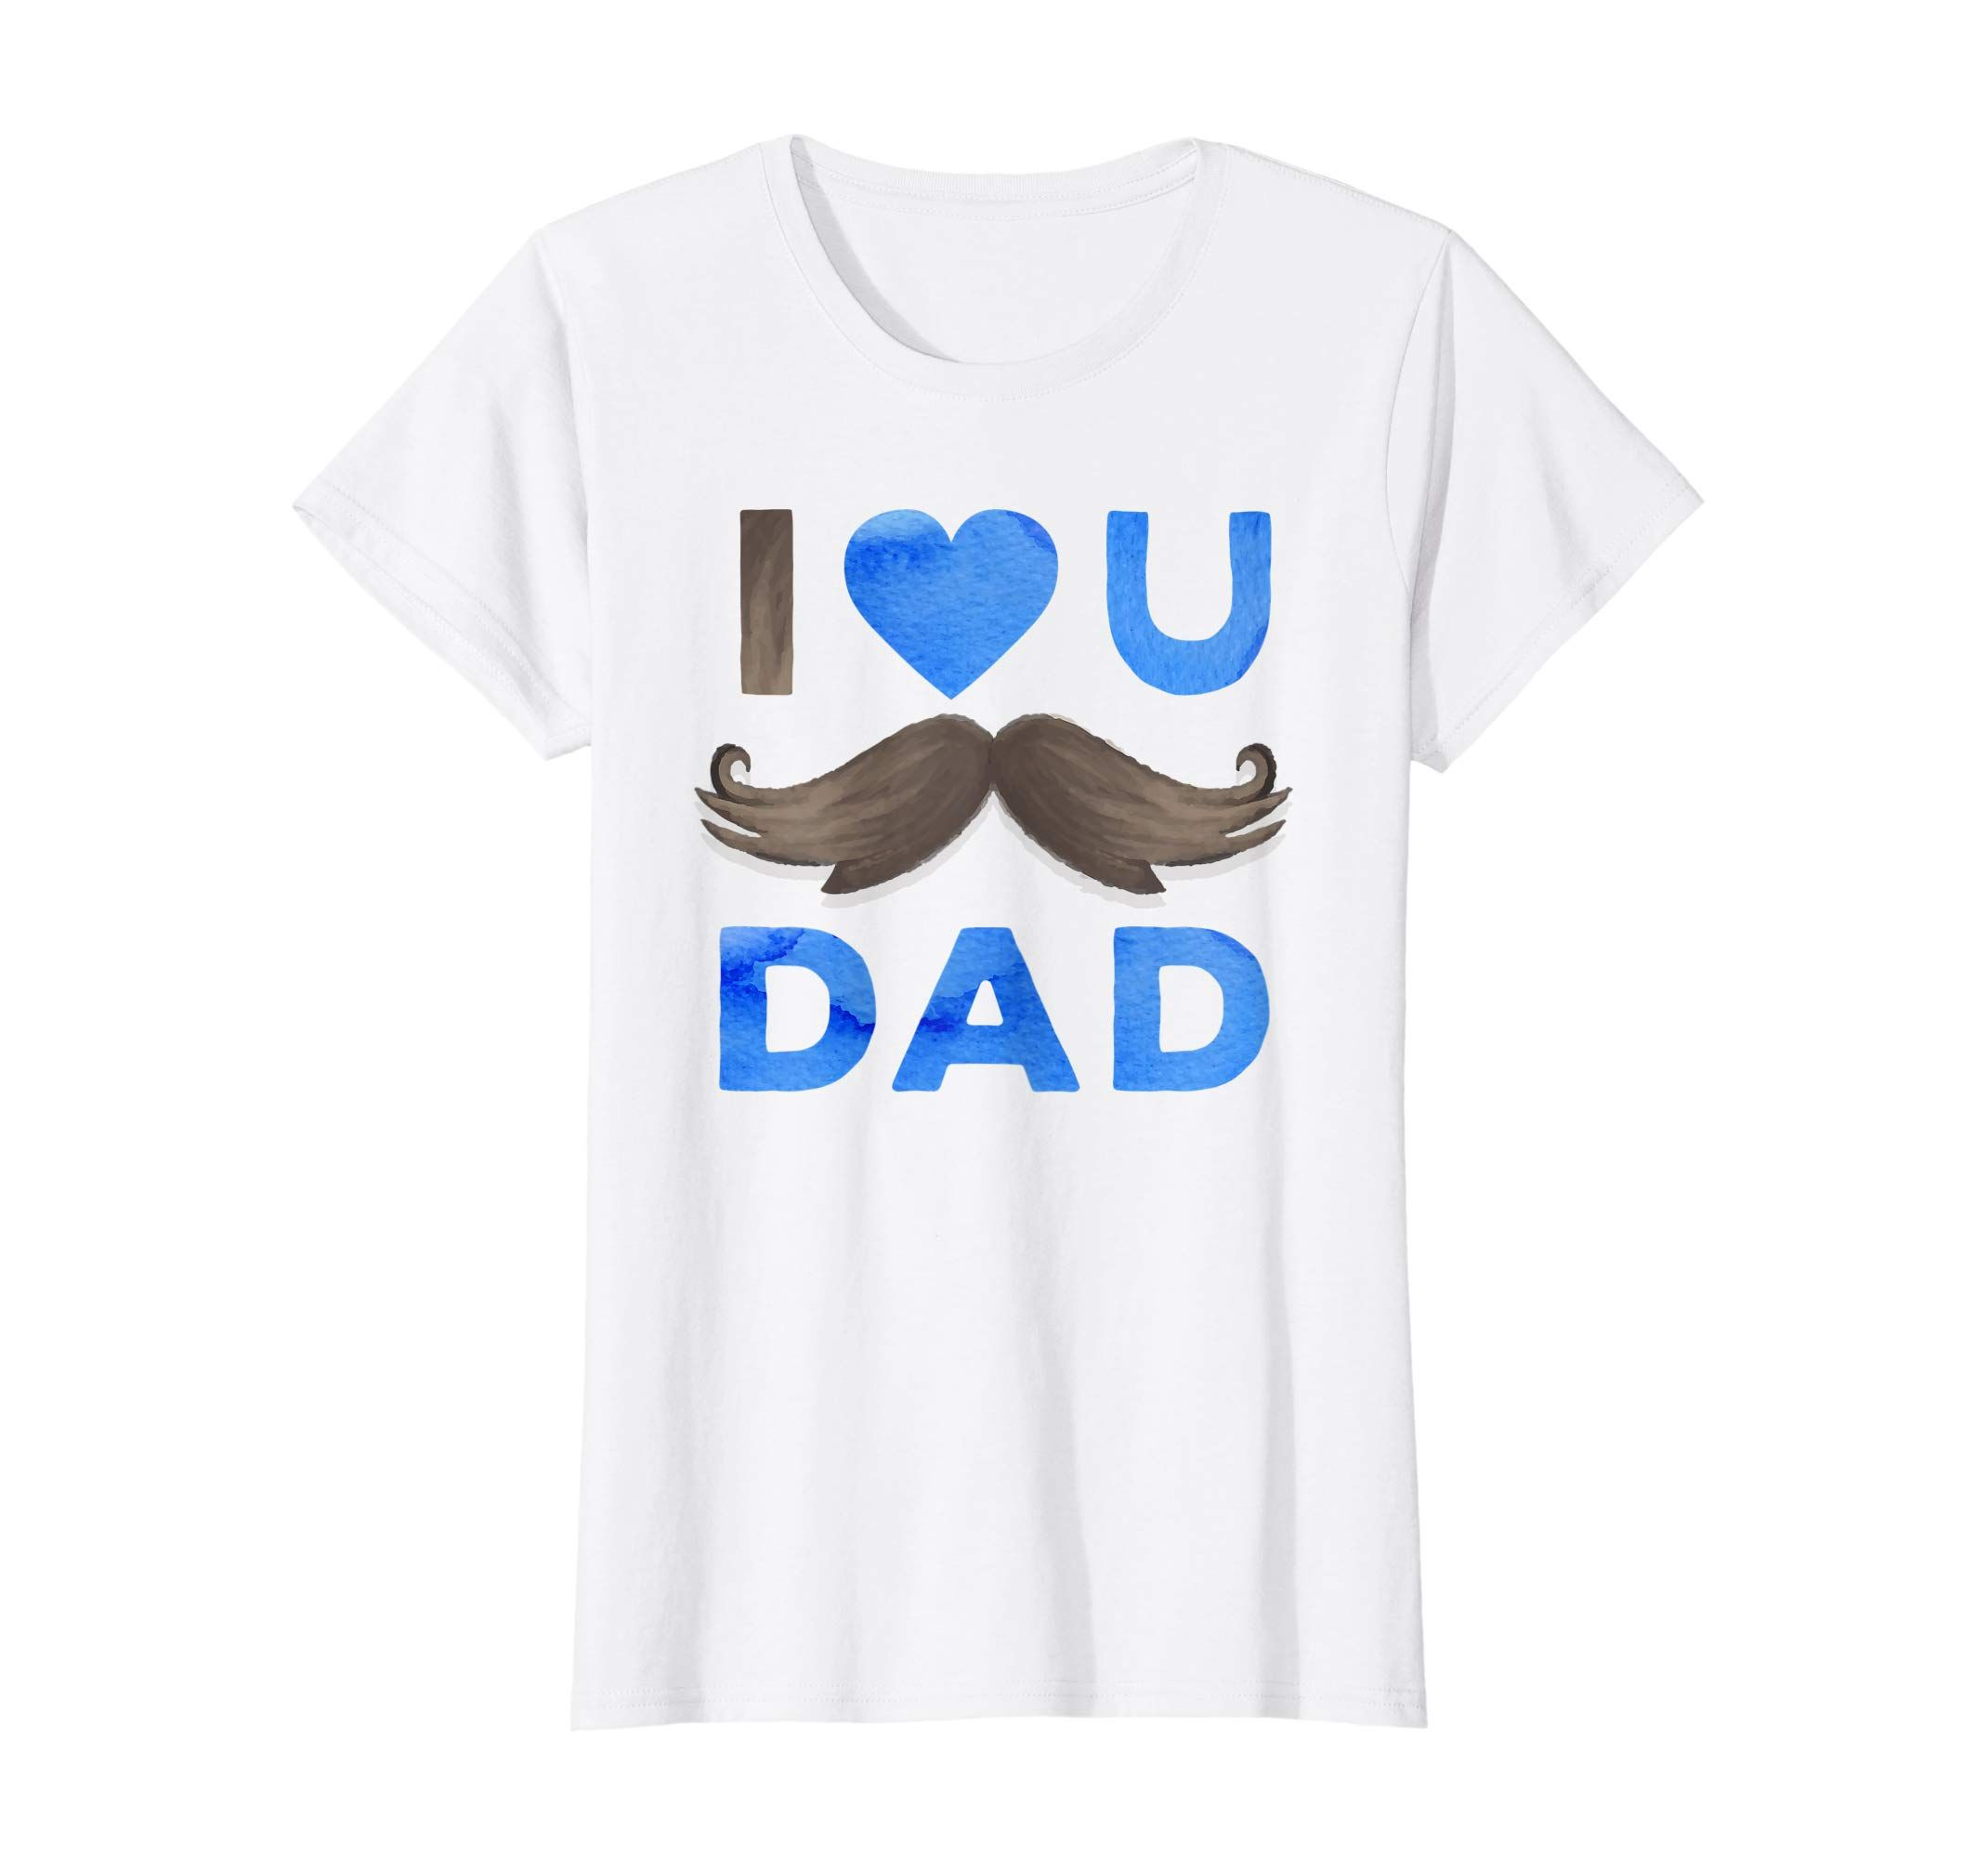 79e24217 Amazon.com: I Love You Dad tshirt - Mustache Father's Day Gift T ...